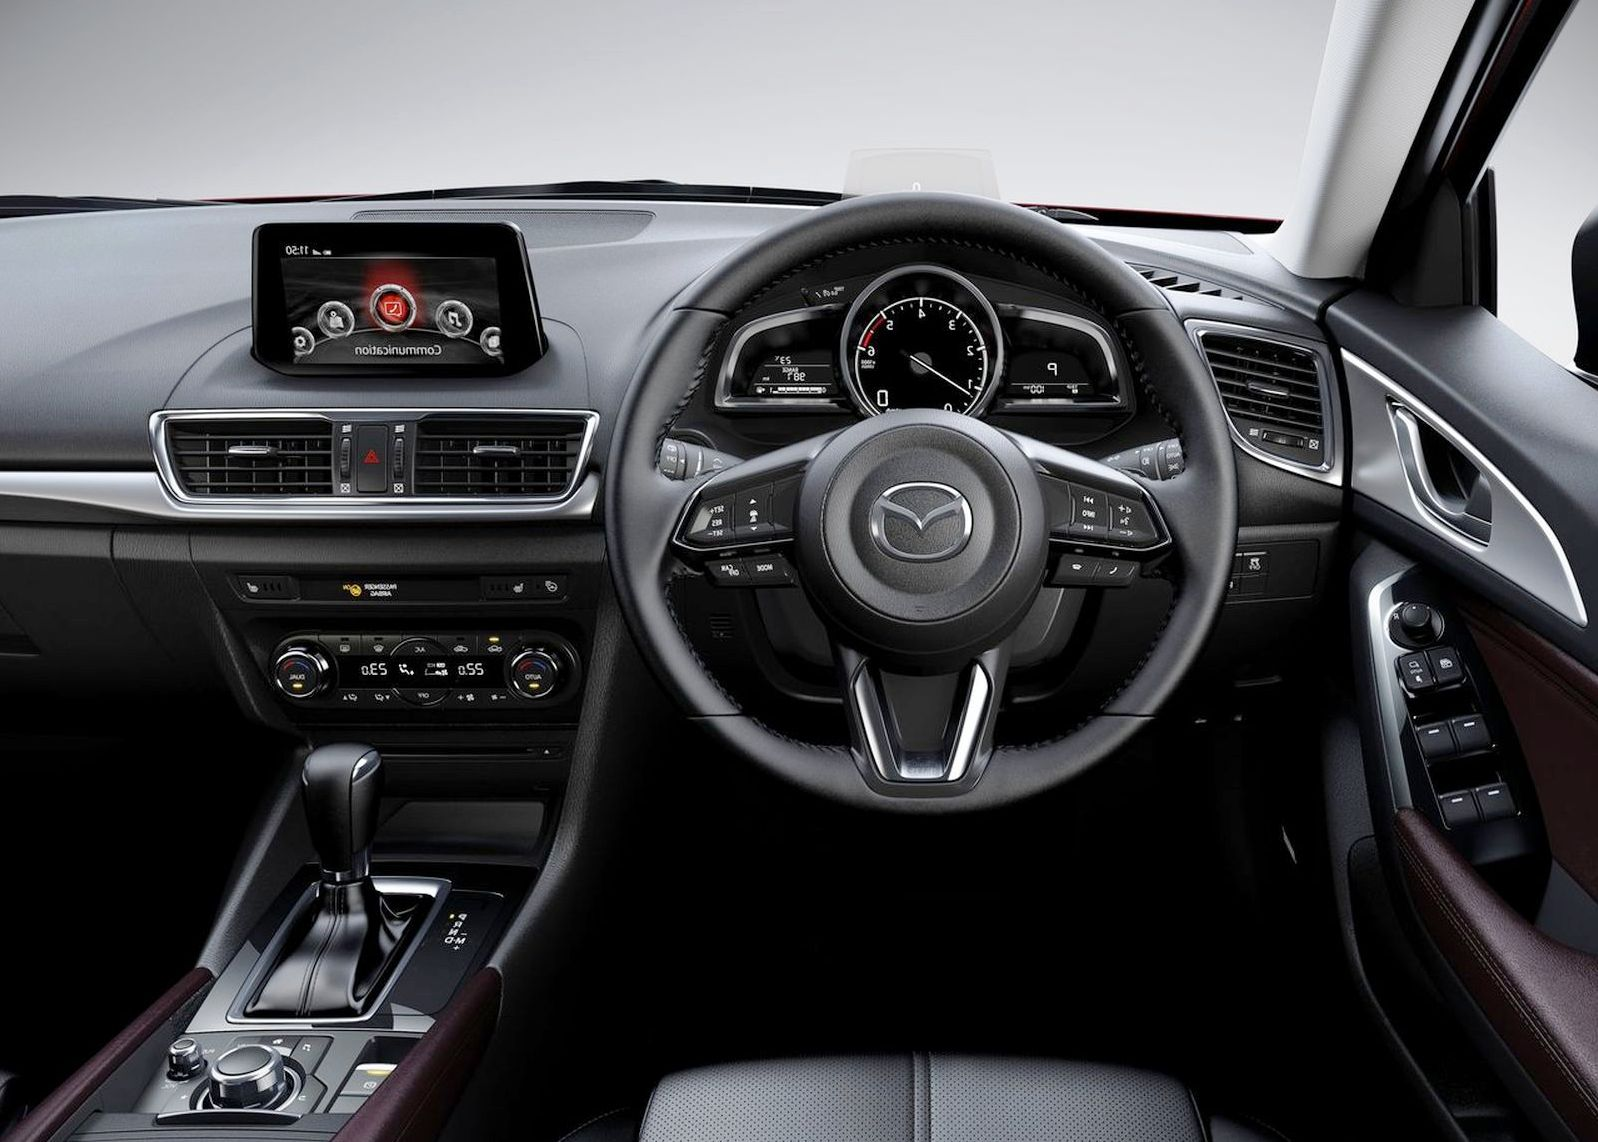 2018 mazda 3 interior concept new suv price new suv price. Black Bedroom Furniture Sets. Home Design Ideas